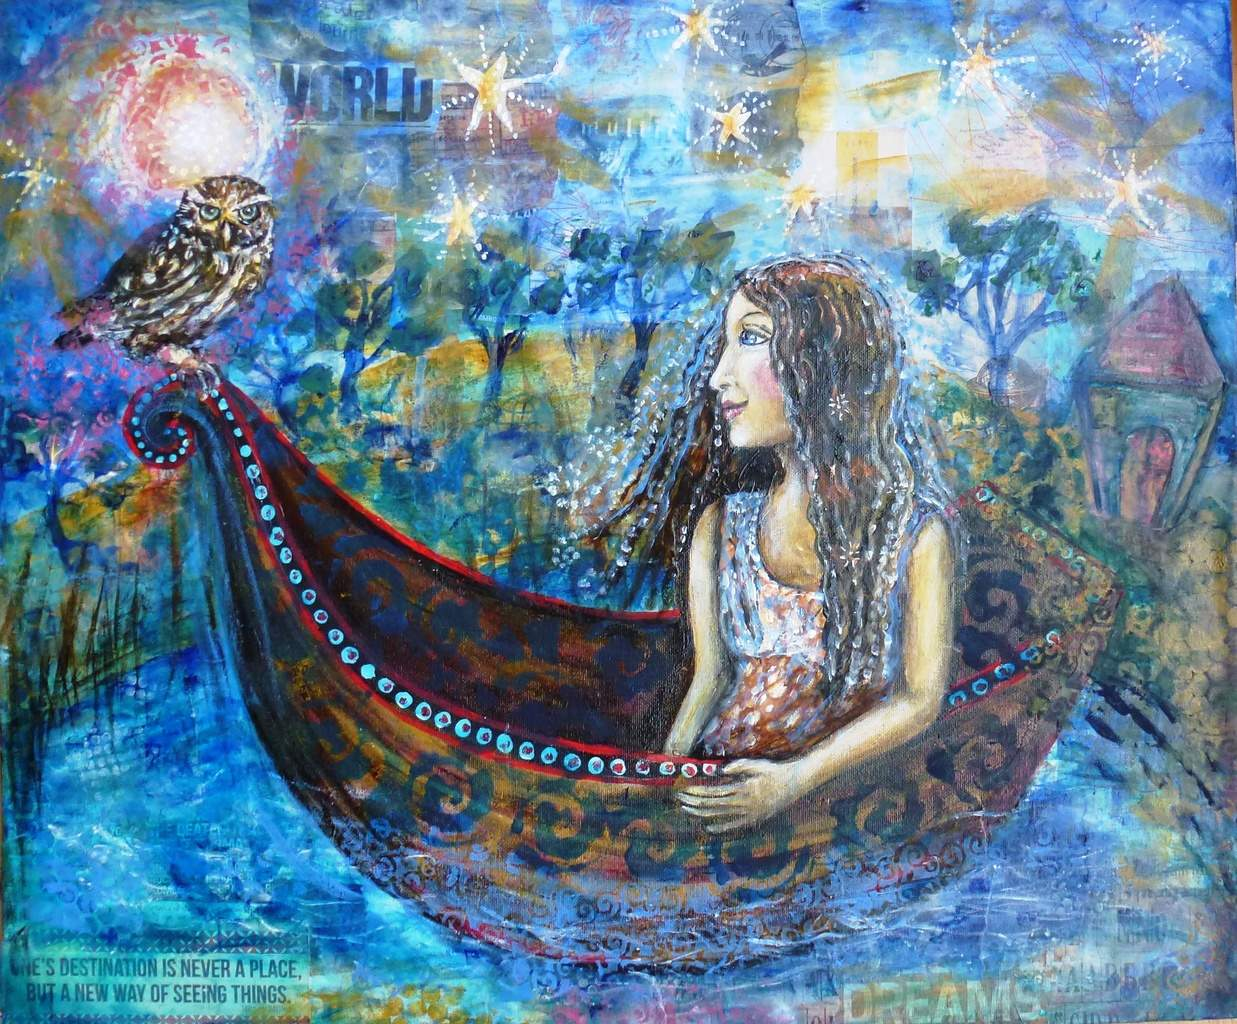 Dreamscape  Original artwork by Cheryle Bannon Mixed media acrylic collage on canvas.